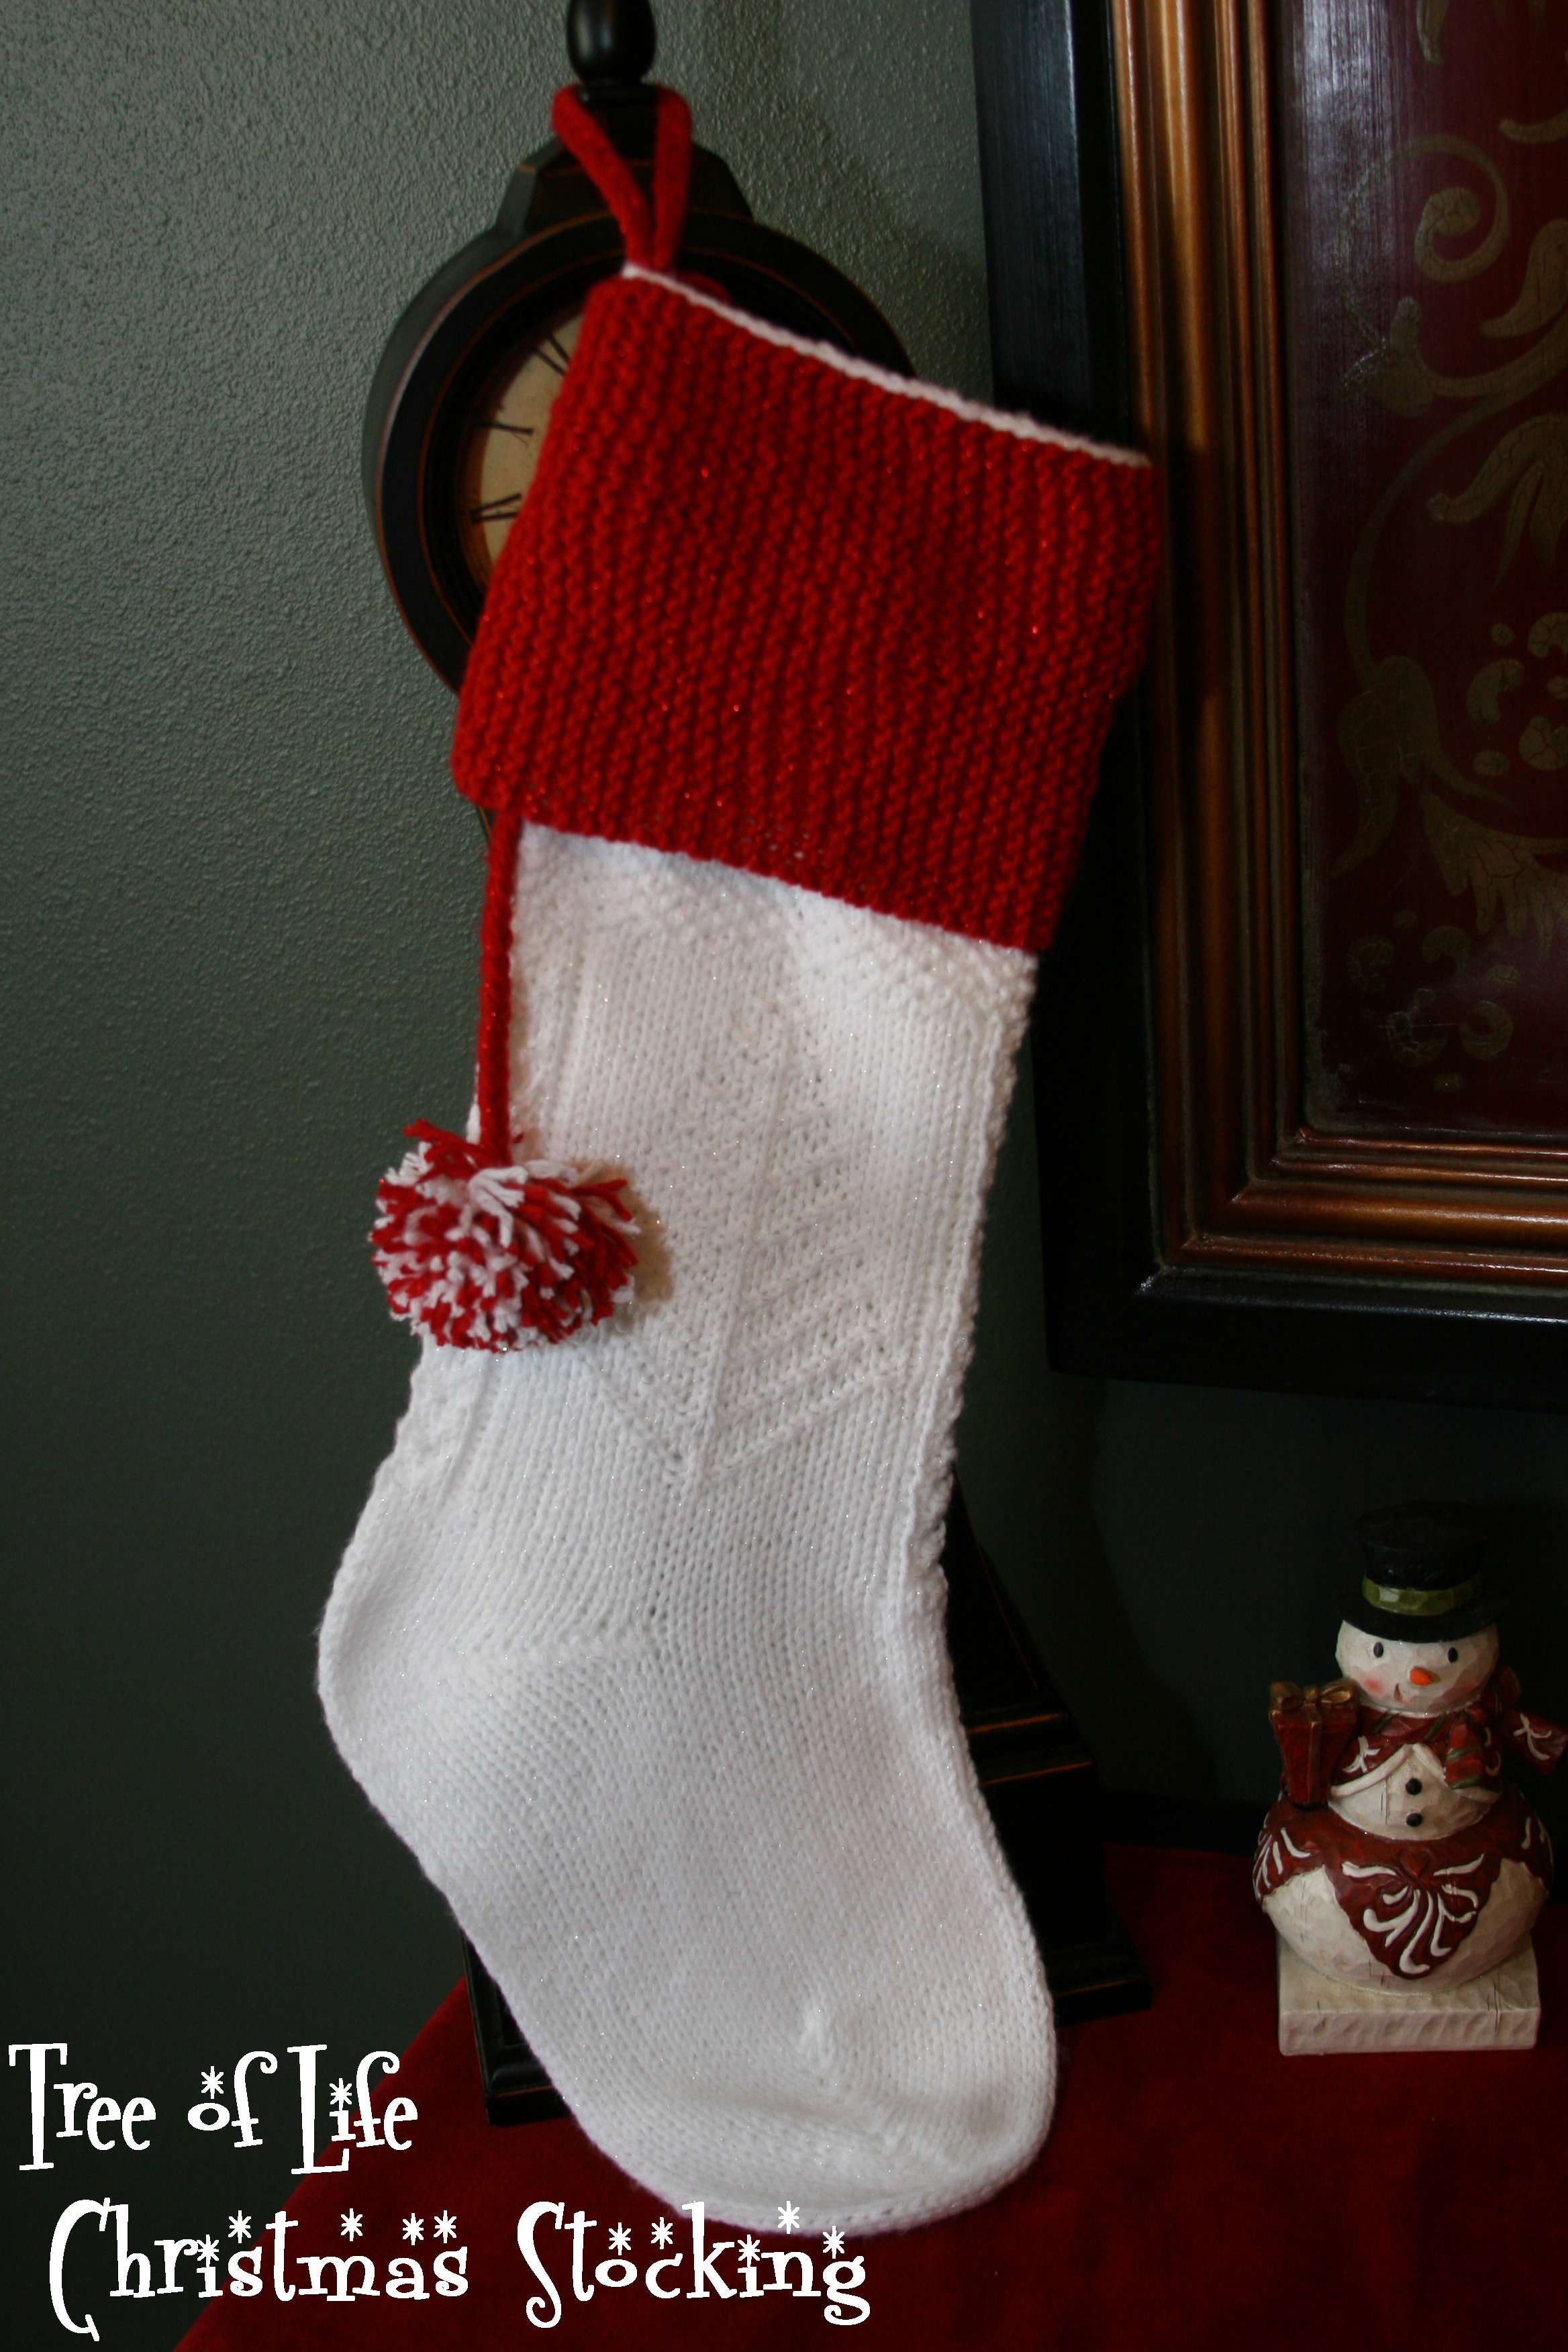 Happy Holidays!!! Christmas Stocking Pattern   Knitting Board Blog